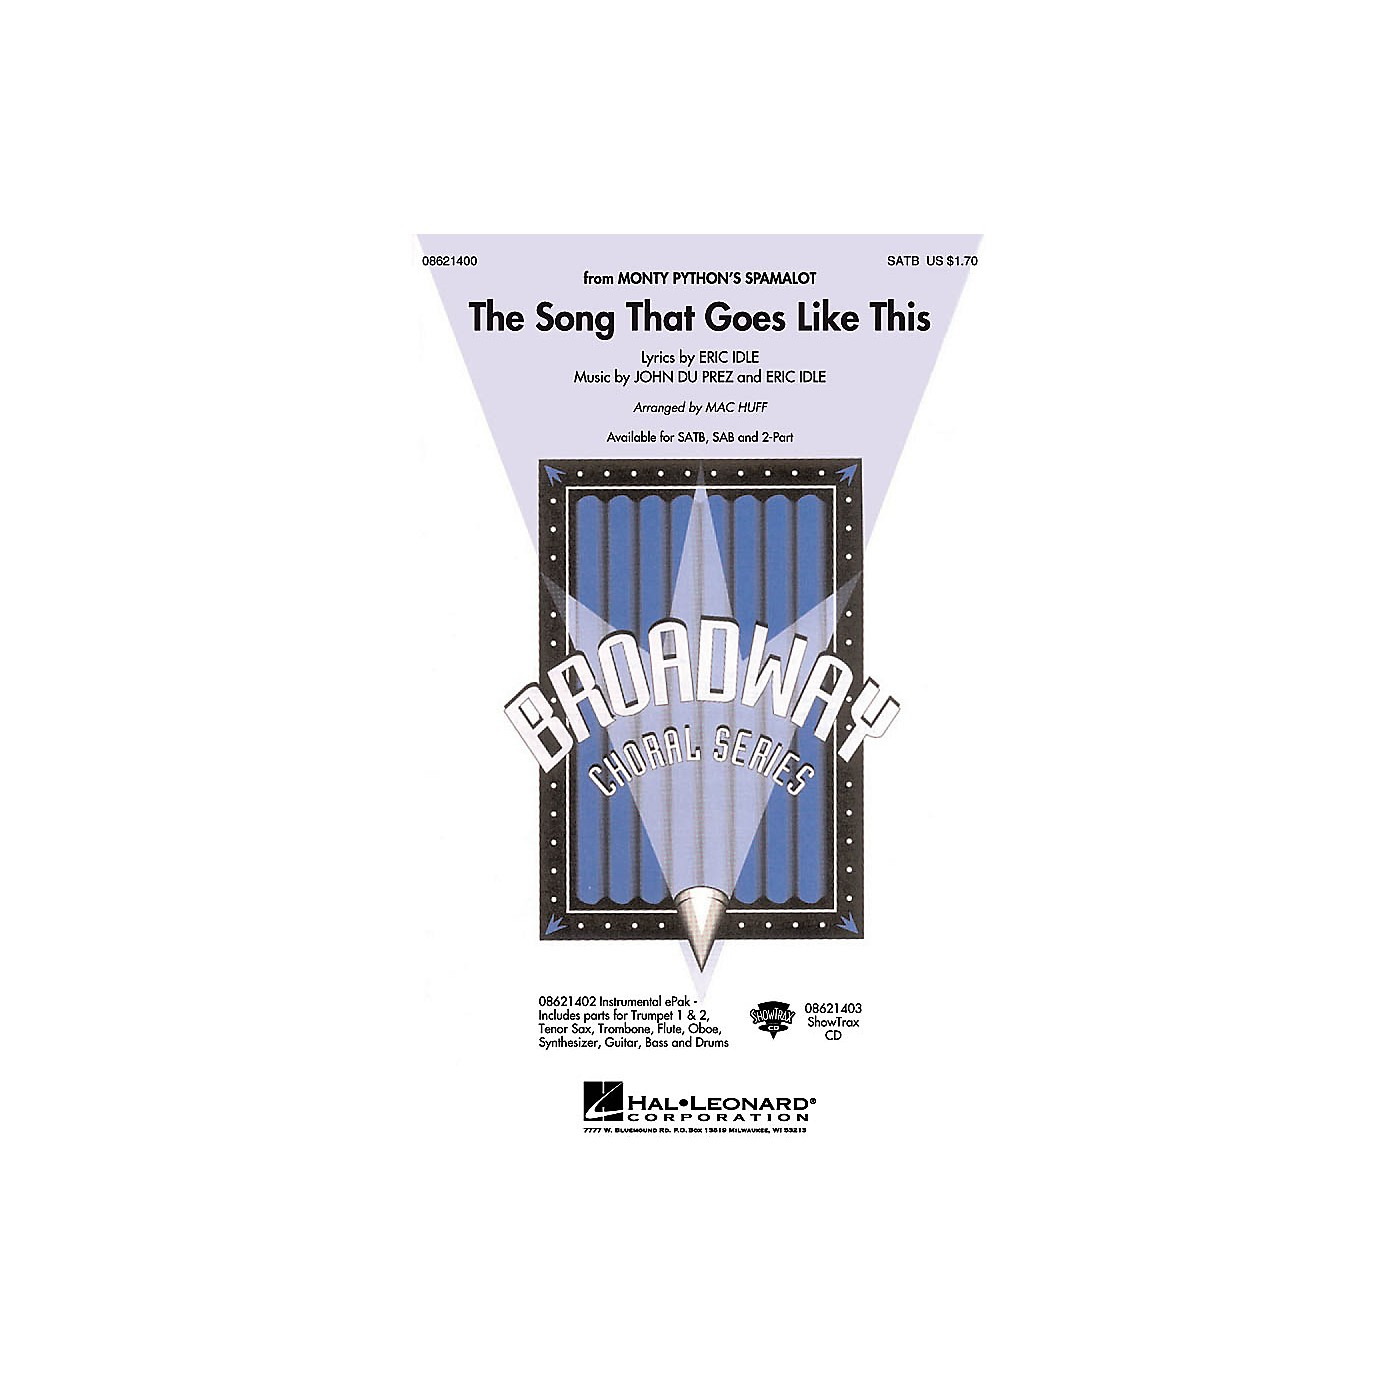 Hal Leonard The Song That Goes like This 2-Part Arranged by Mac Huff thumbnail